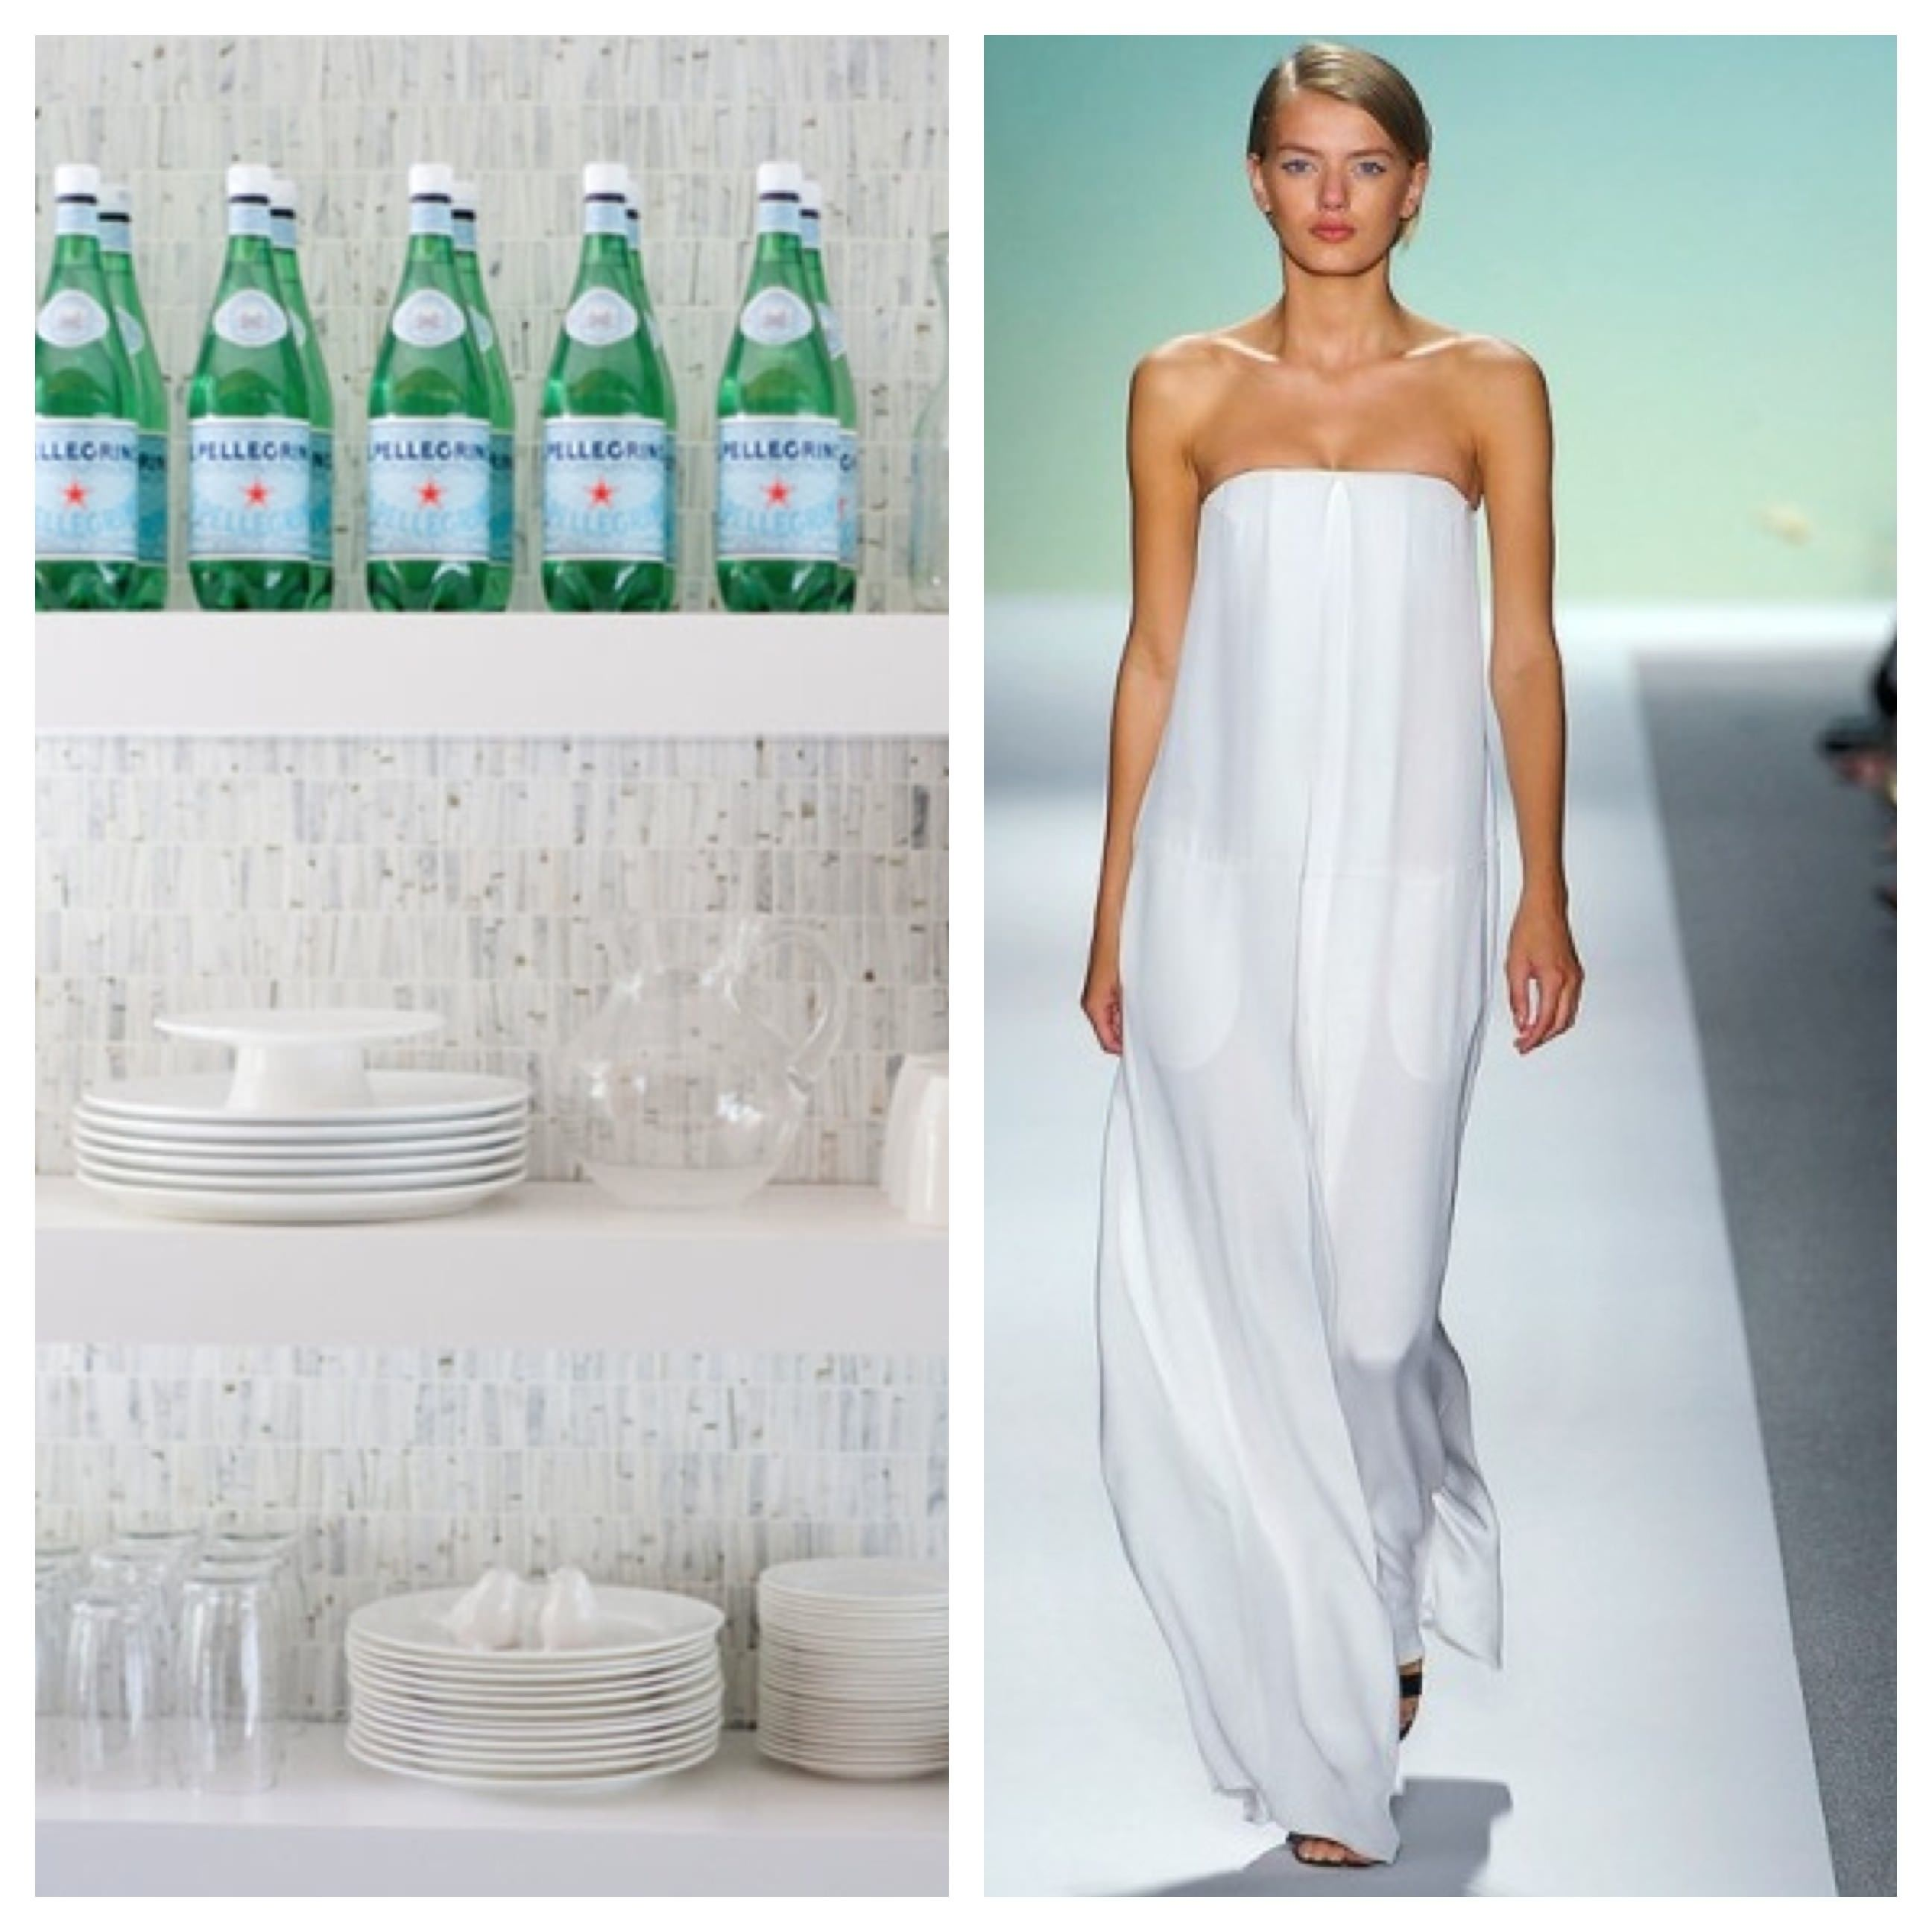 Fashion Week, New York Fashion Week, Model, Runway, Catwalk, skinny girl, pretty girl, organized kitchen, white plates, pellegrino